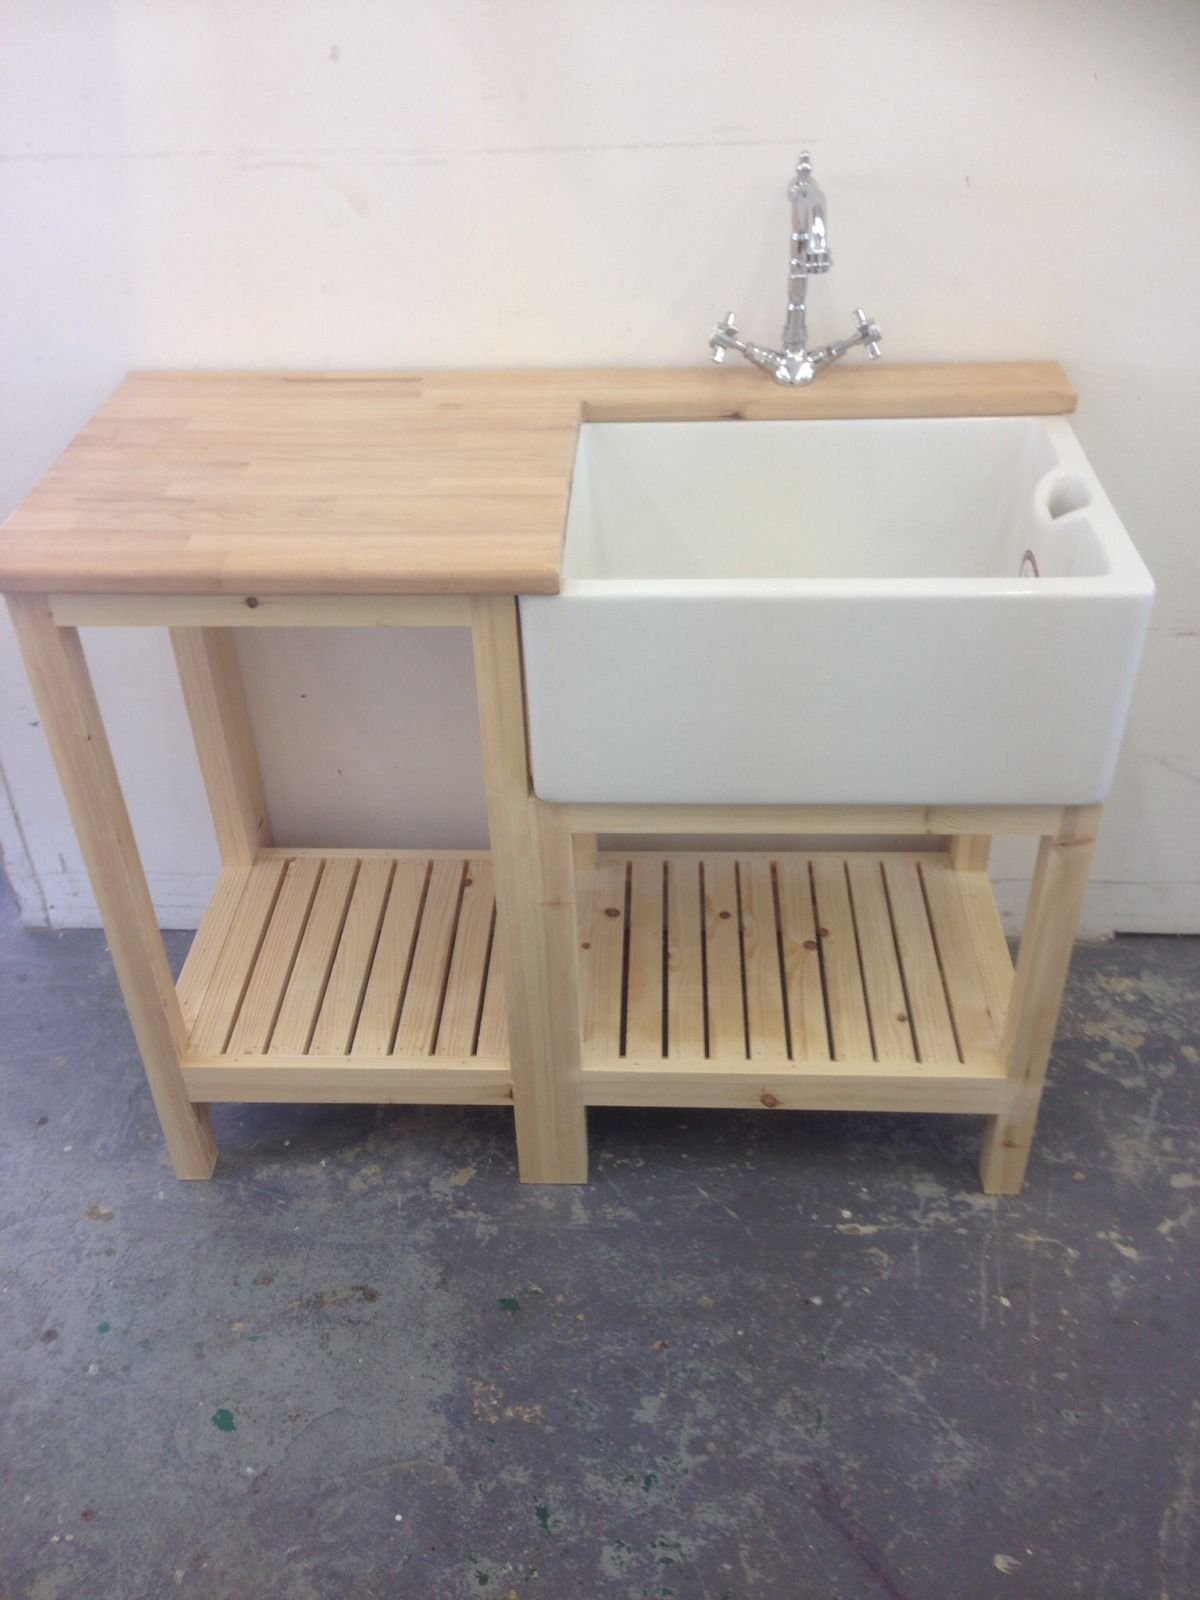 belfast sink unit drainer worktop french tap waste complete set 545 - Small Kitchen Sink With Drainer